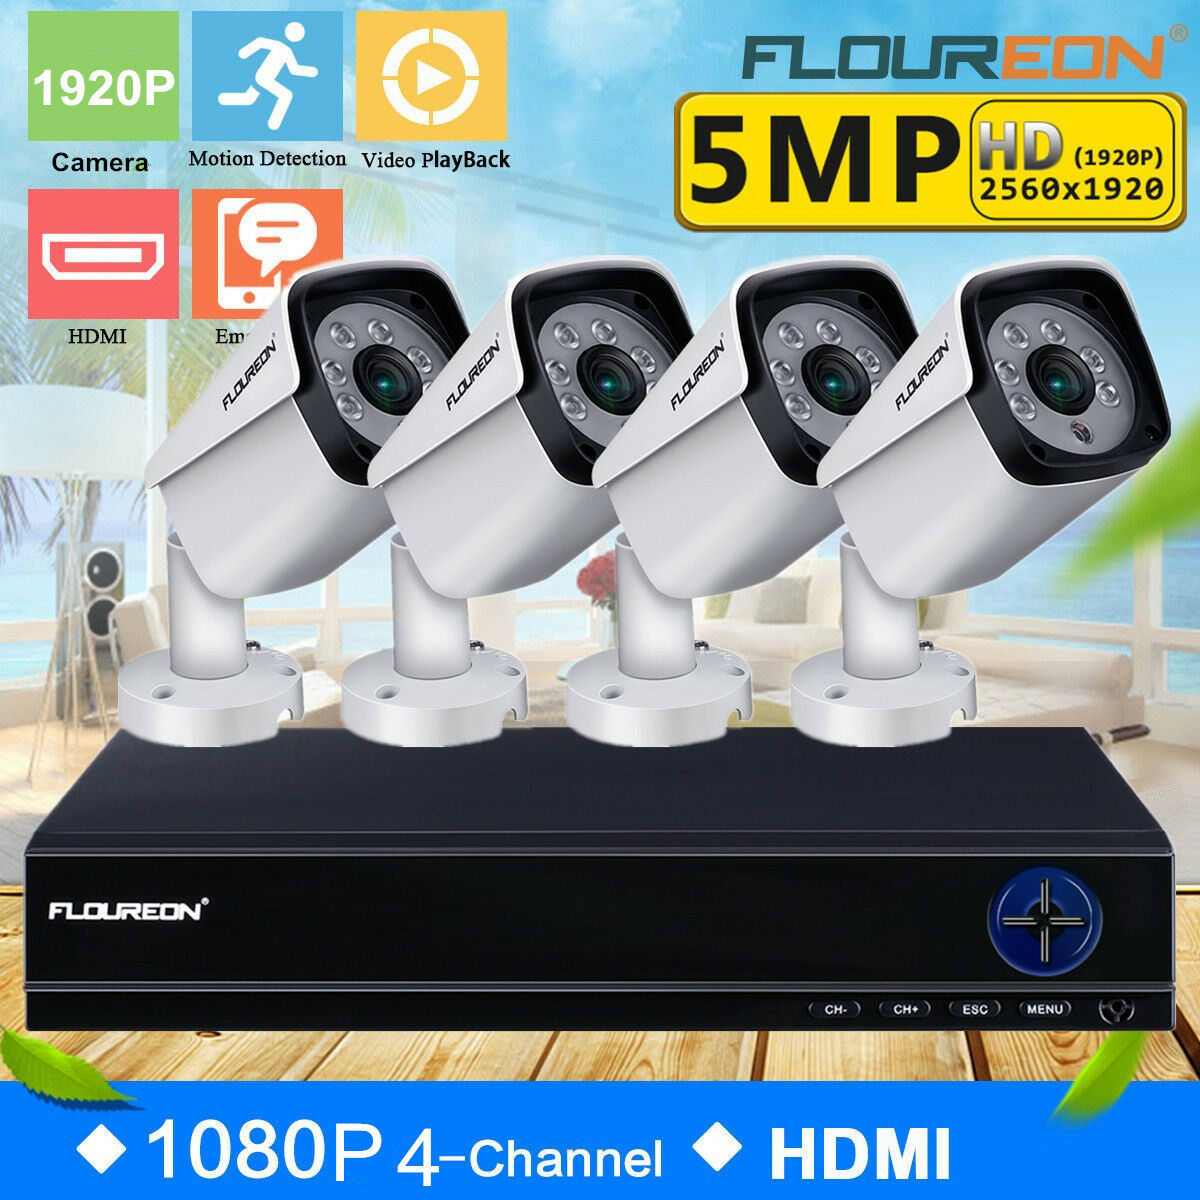 Details about FLOUREON CCTV 5MP AHD DVR 1920P 4K Outdoor Camera Home Video  Security System Kit